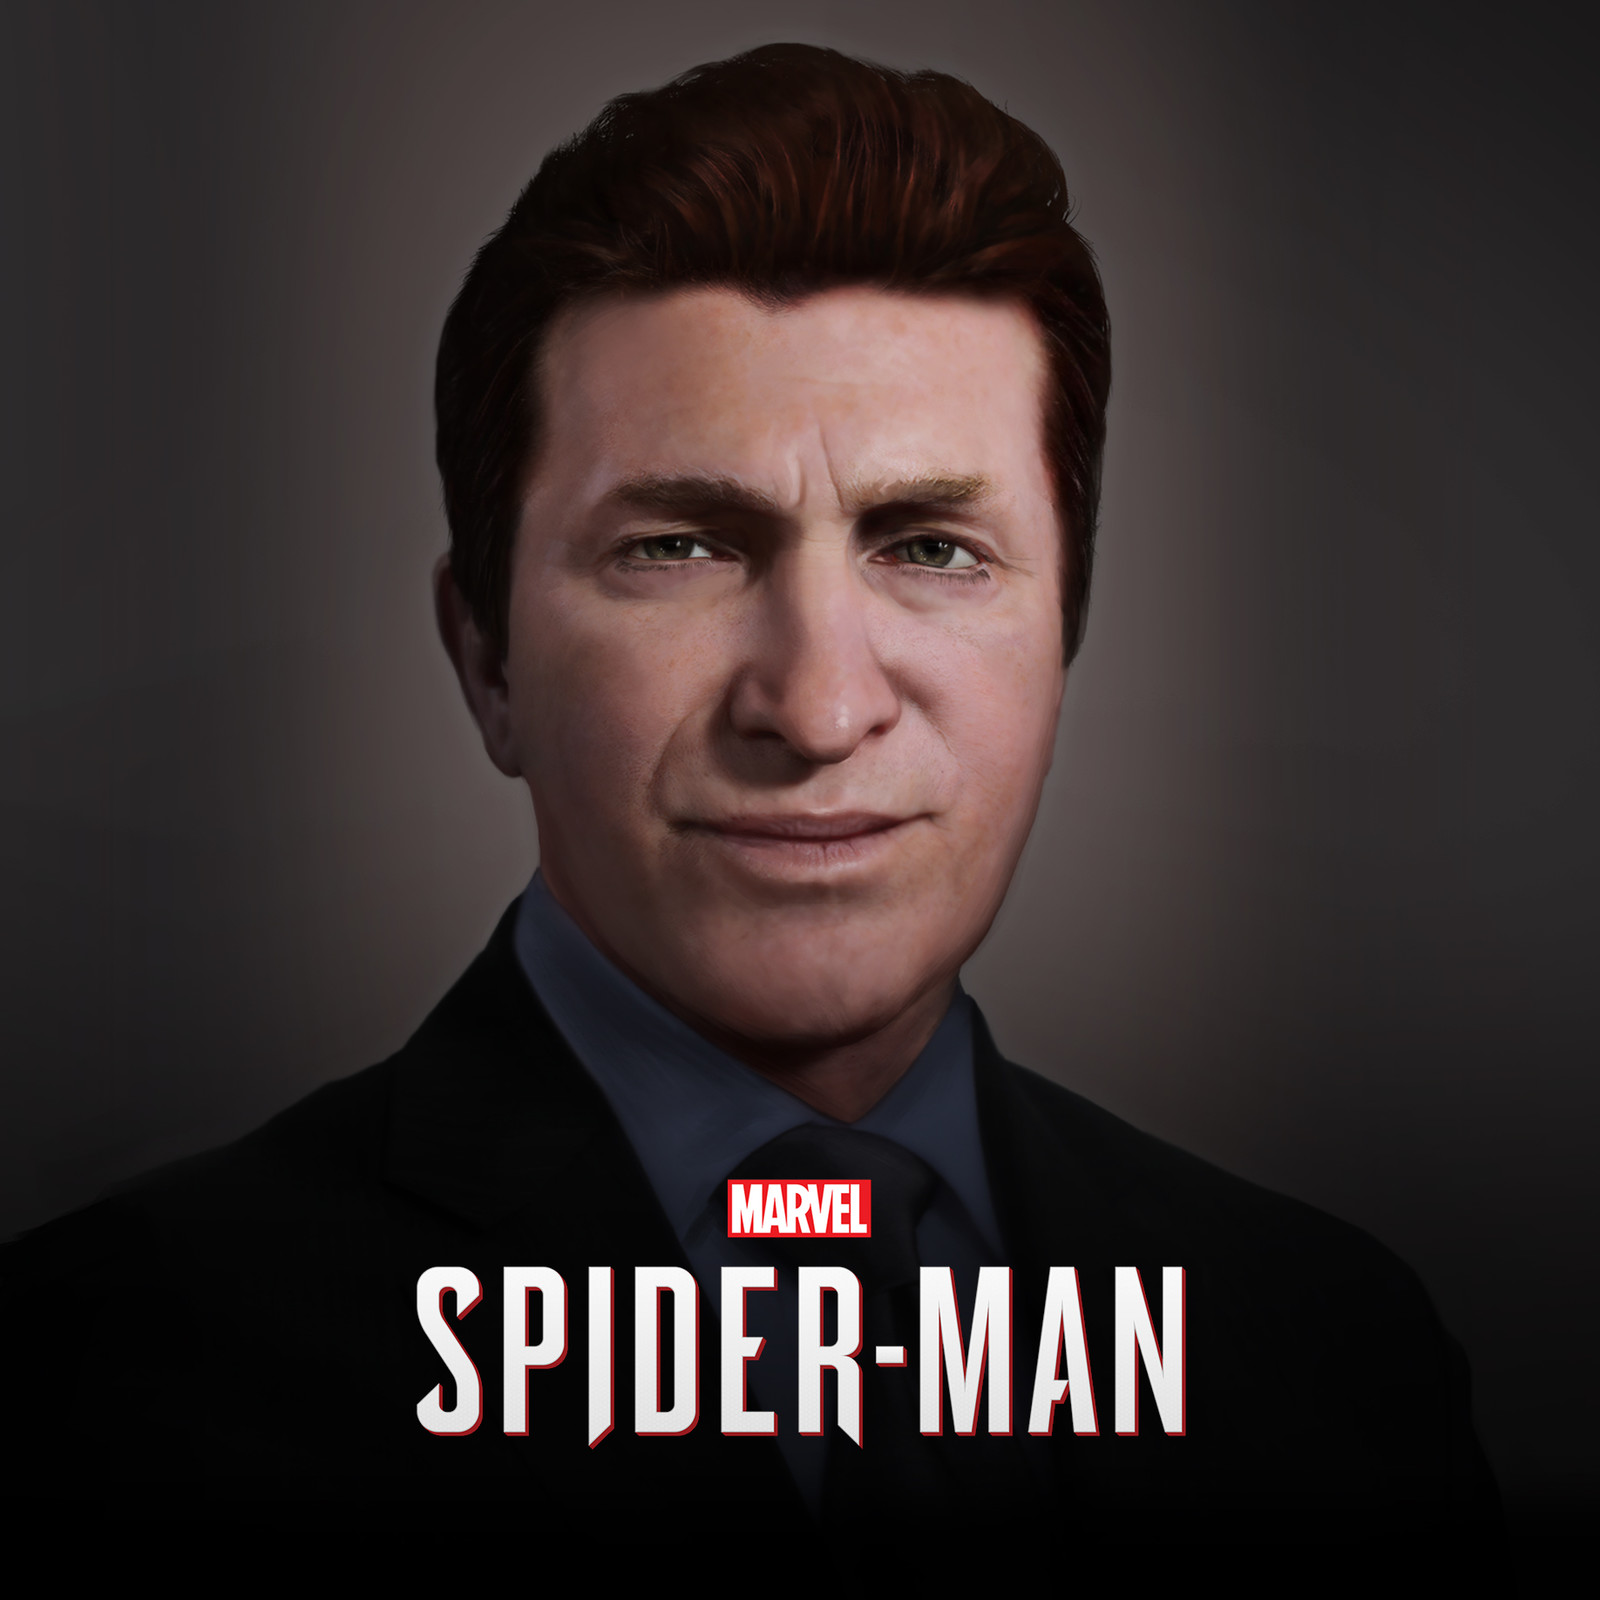 Spider-man Illustrations - Norman Osborn